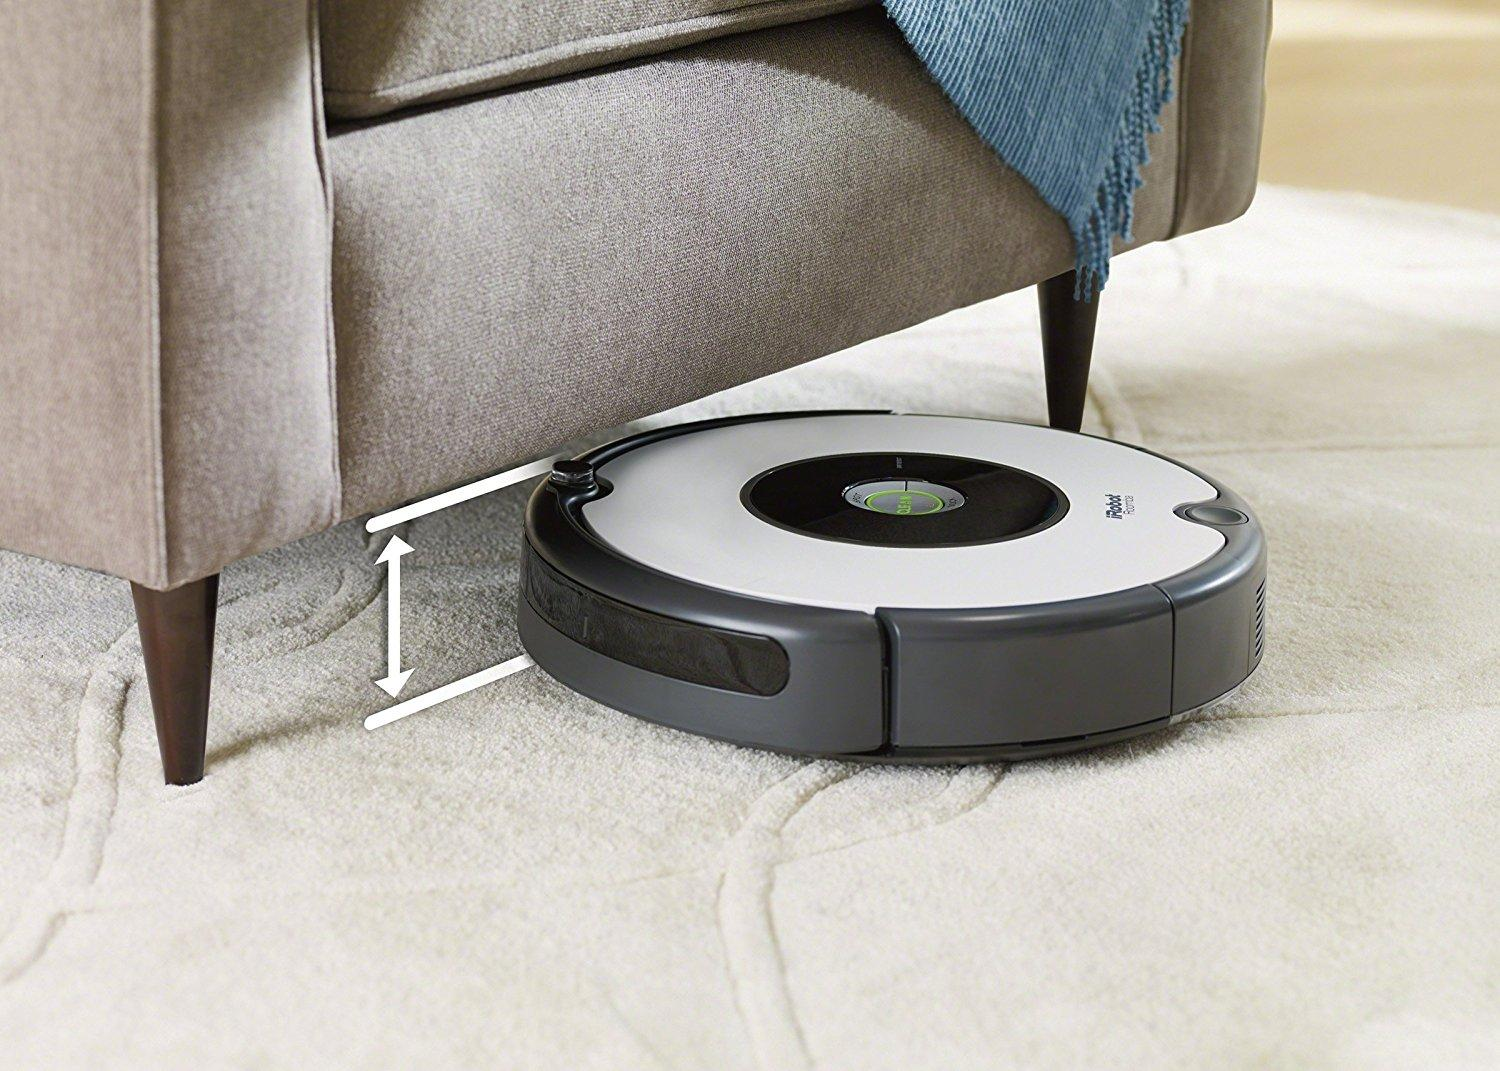 Where To Buy Sofa Vacuum Cleaner Amazon Black Friday Deals Roomba Robot Vacuum Cleaner